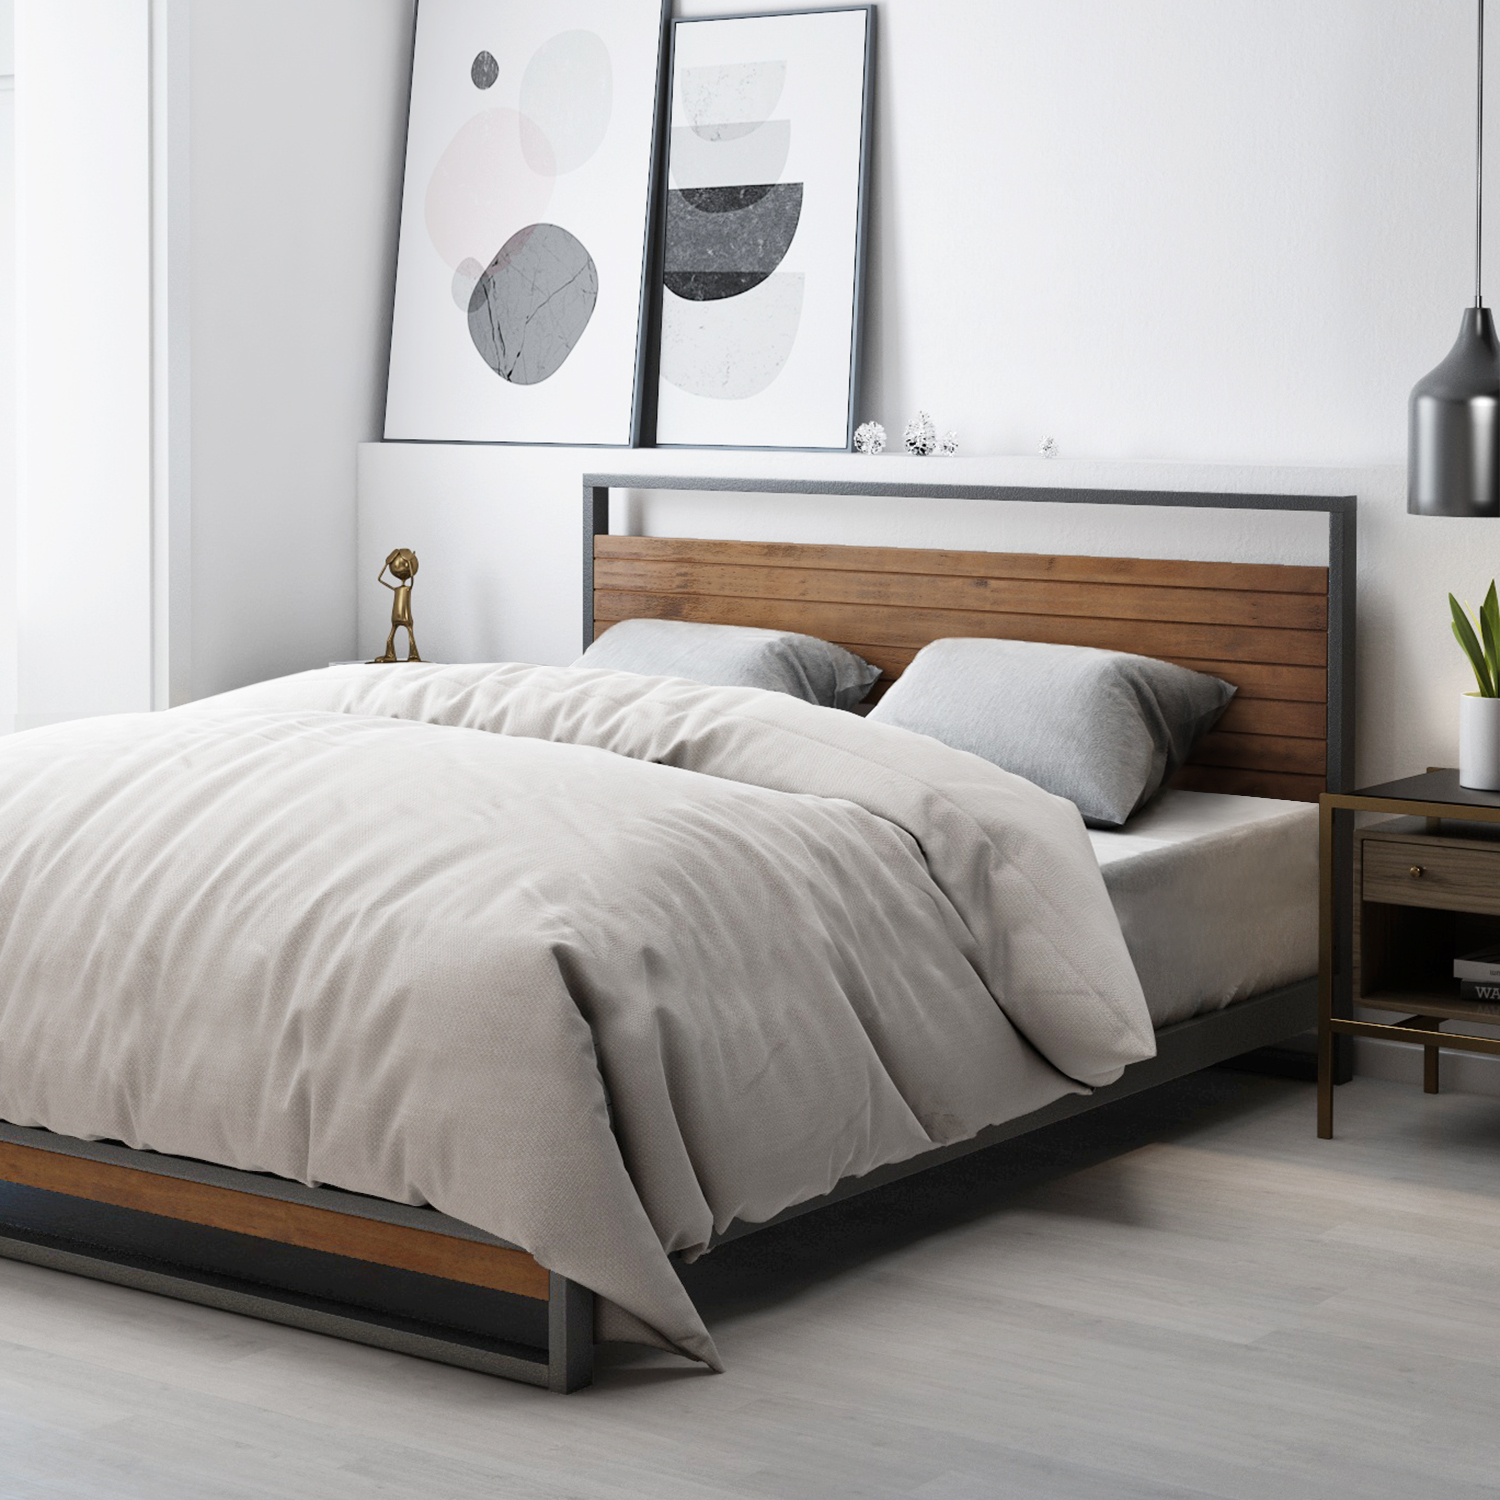 Zinus-Ironline-Metal-Wood-Bed-Frame-Queen-Single-Double-King-Base-Mattress-Pine thumbnail 3